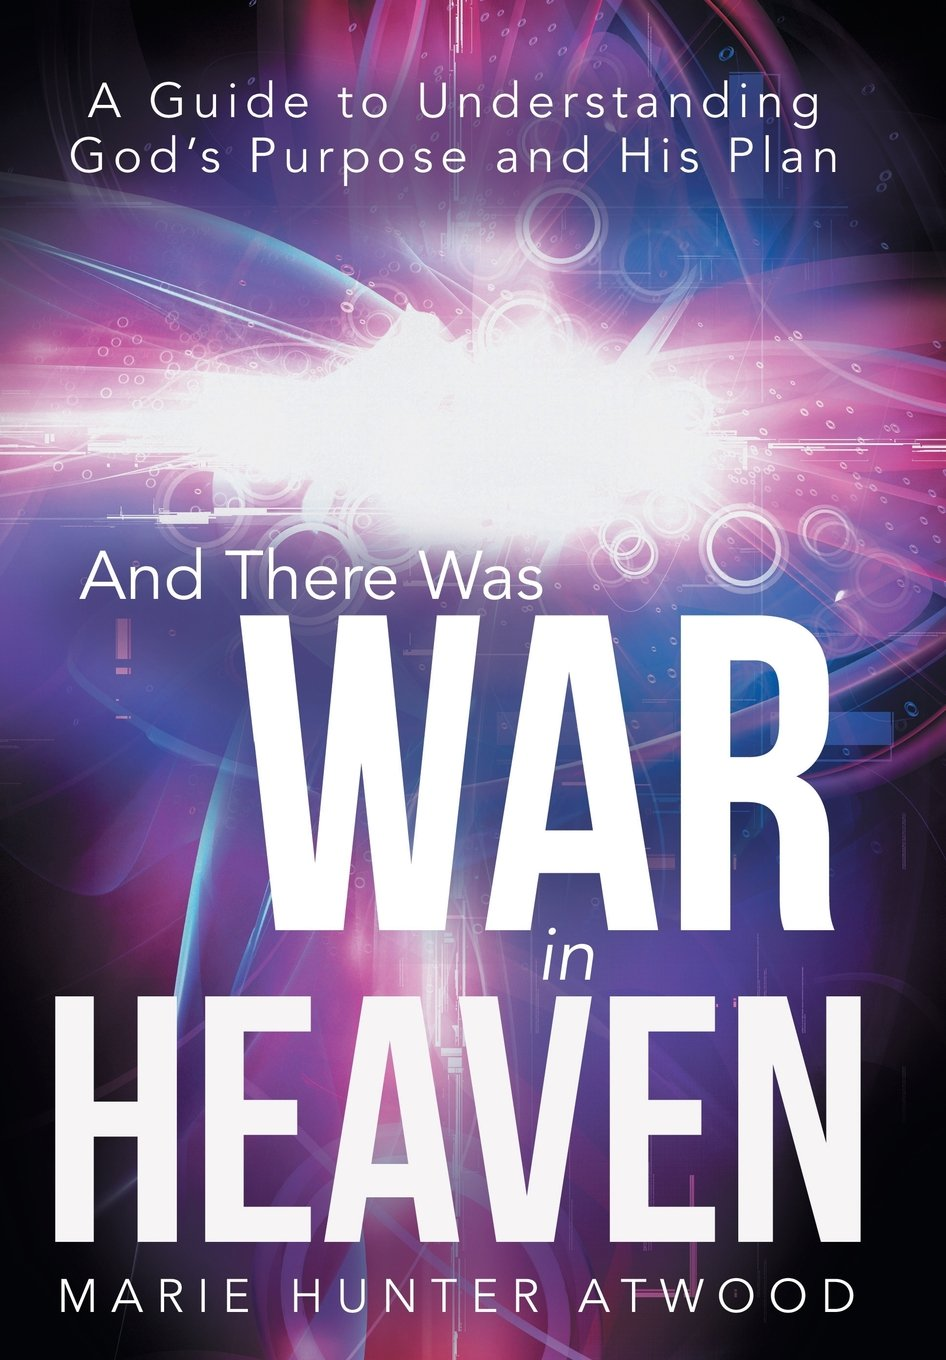 And There Was War in Heaven.jpg